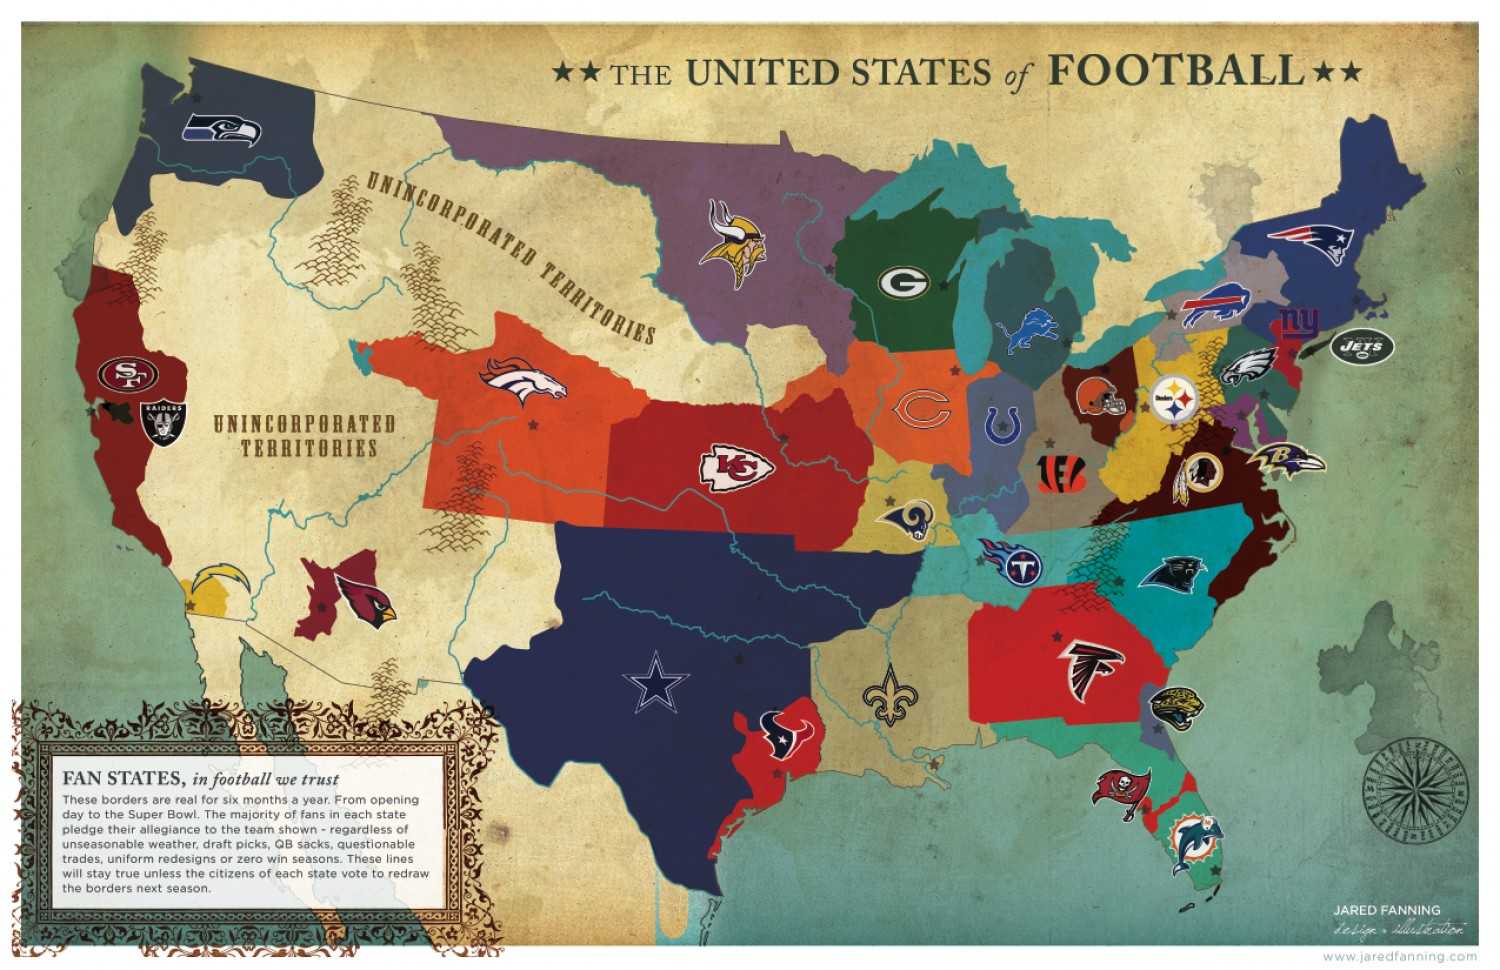 The United States of Football — Make Gameday Everyday